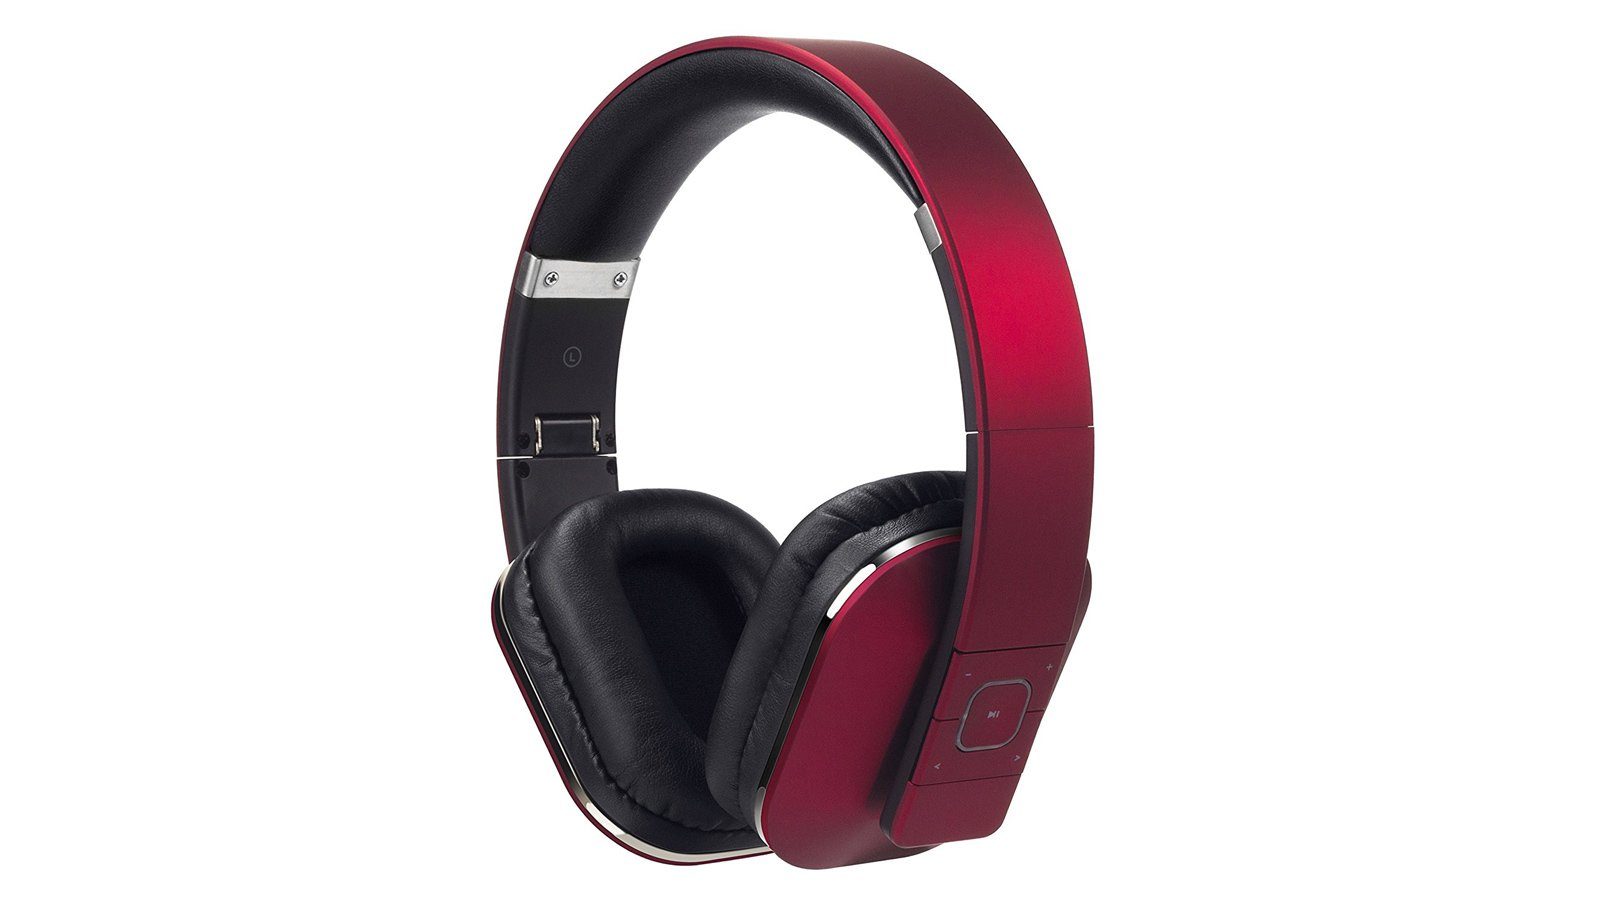 54ca6a7f48a The August EP650 are a set of stylish Bluetooth headphones that are a great  pick for the price. At £40, there aren't many headphones that can offer  both ...